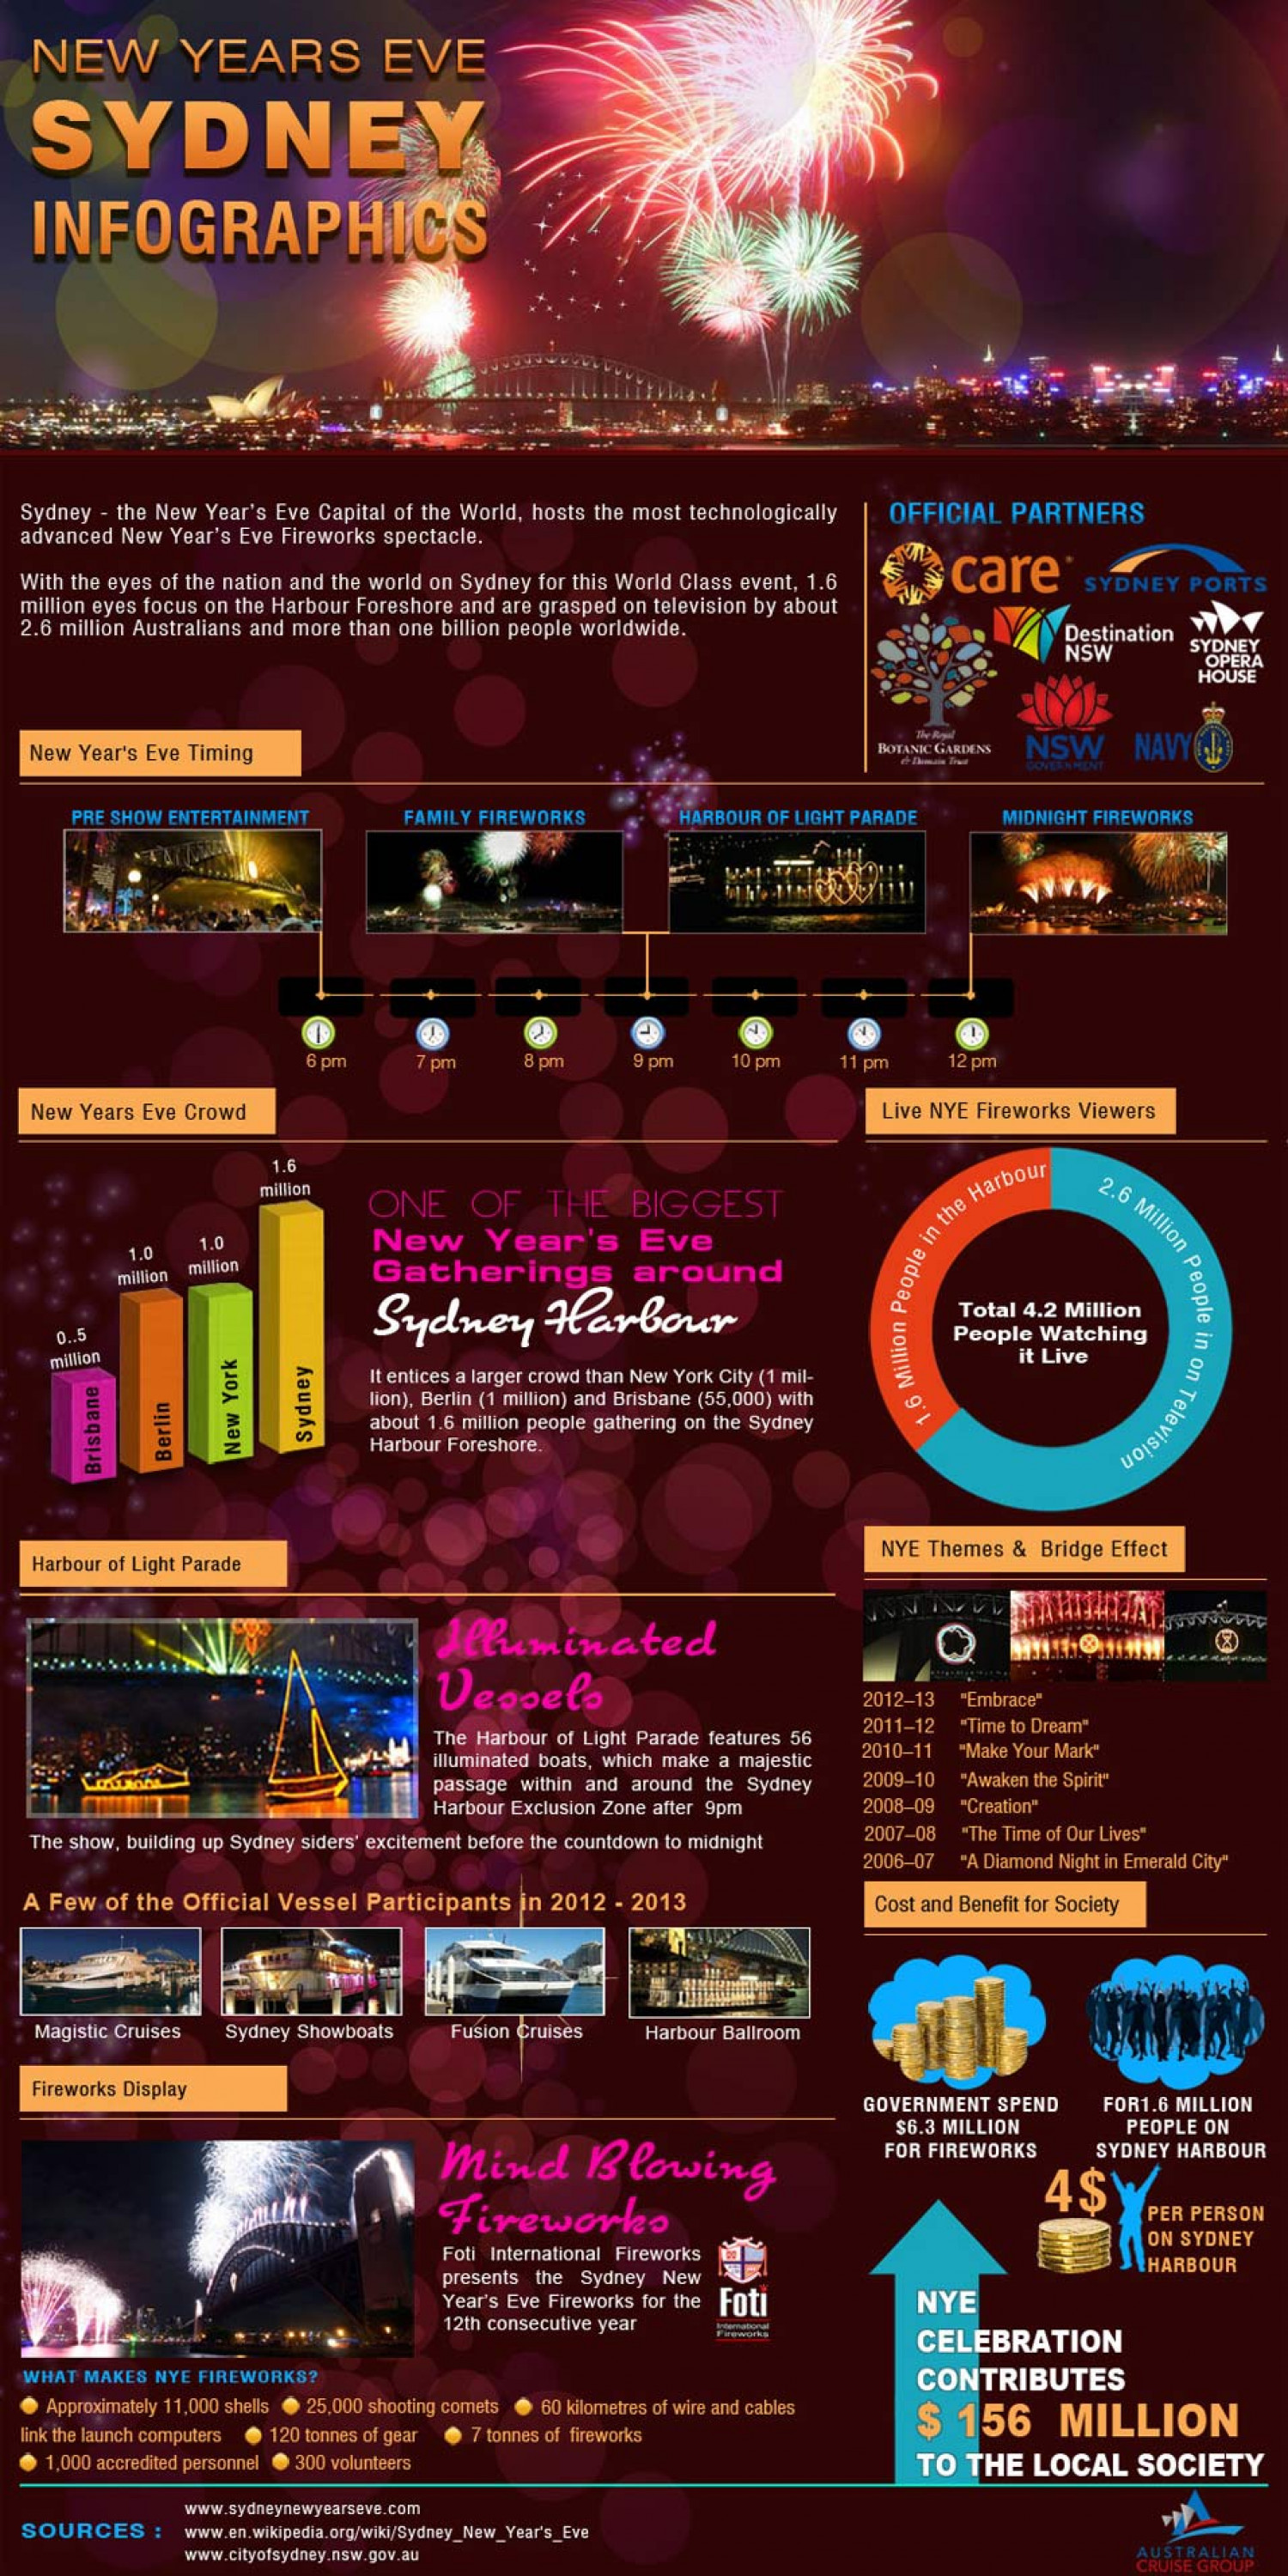 New Years Eve Sydney Infographic